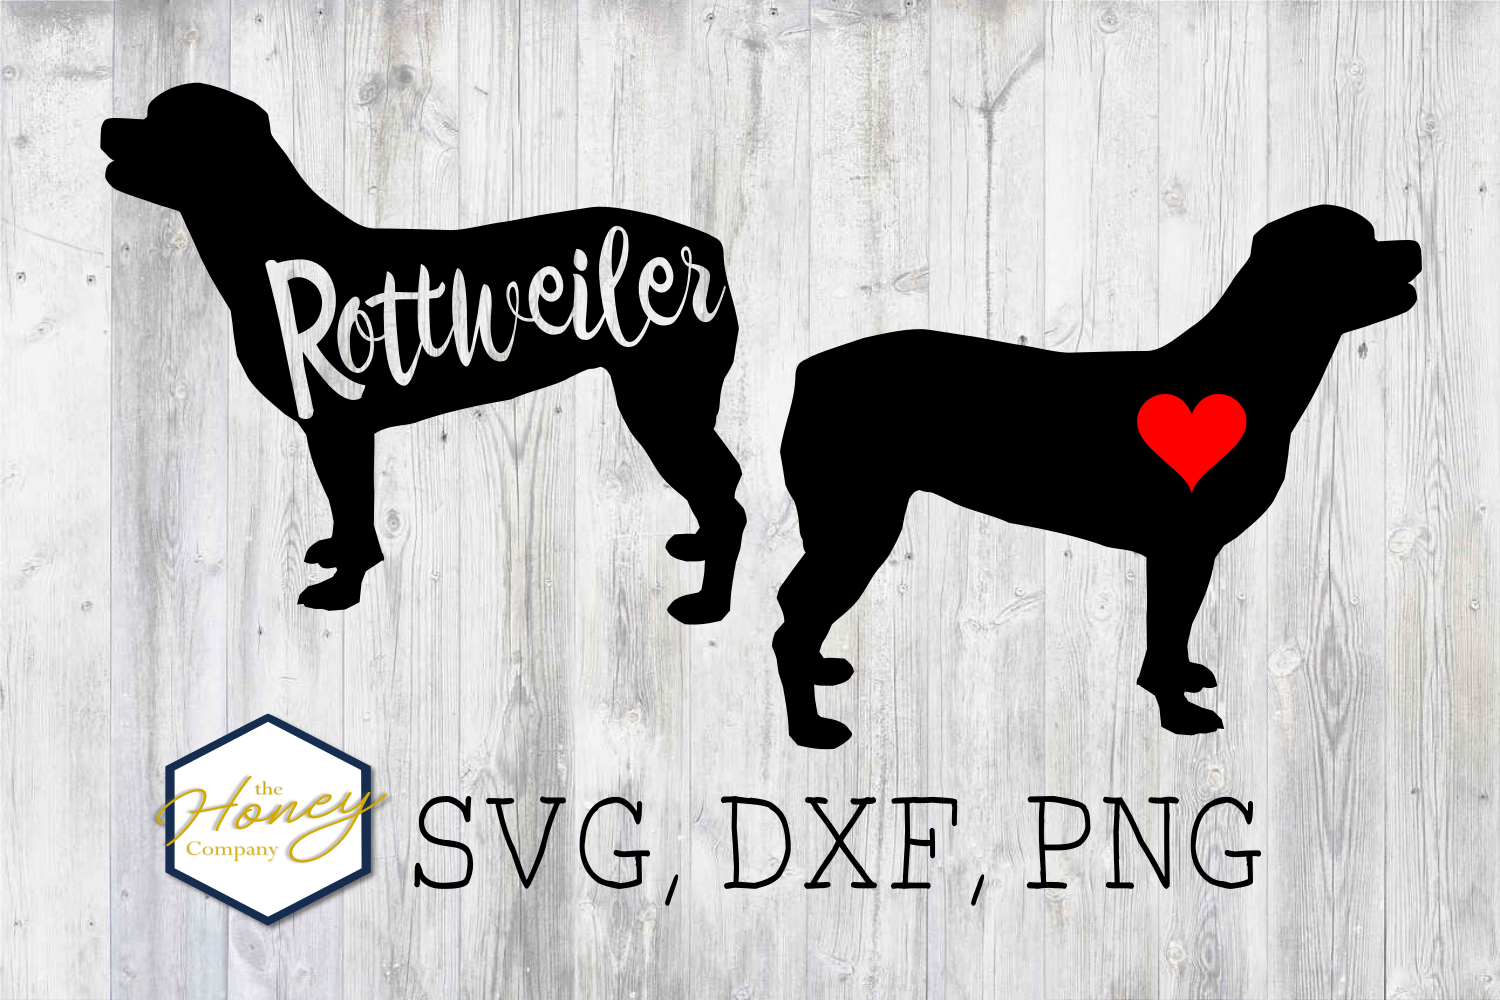 Rottweiler SVG PNG DXF Dog Breed Lover Cut File Clipart example image 1